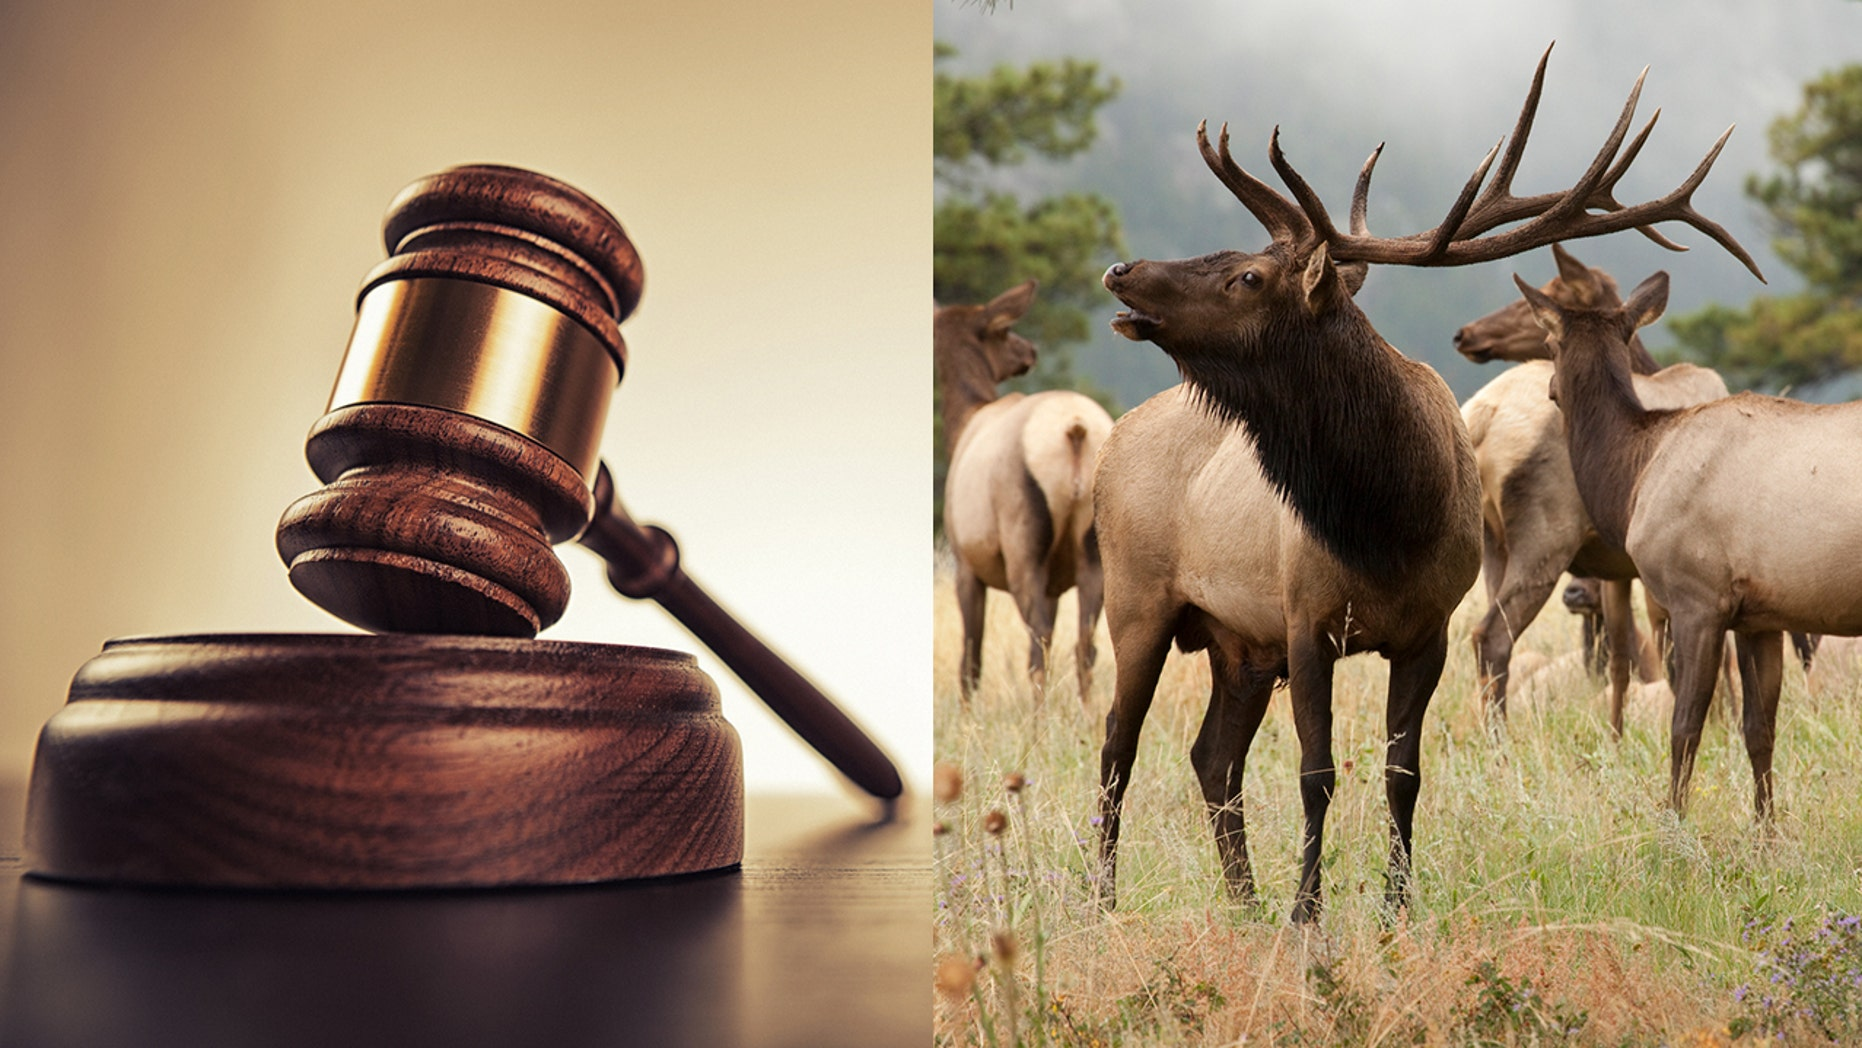 Marvin Doherty was handed a deferred four-year sentence and ordered to pay tens of thousands of dollars after he and four employees led unwitting clients on illegal hunts.